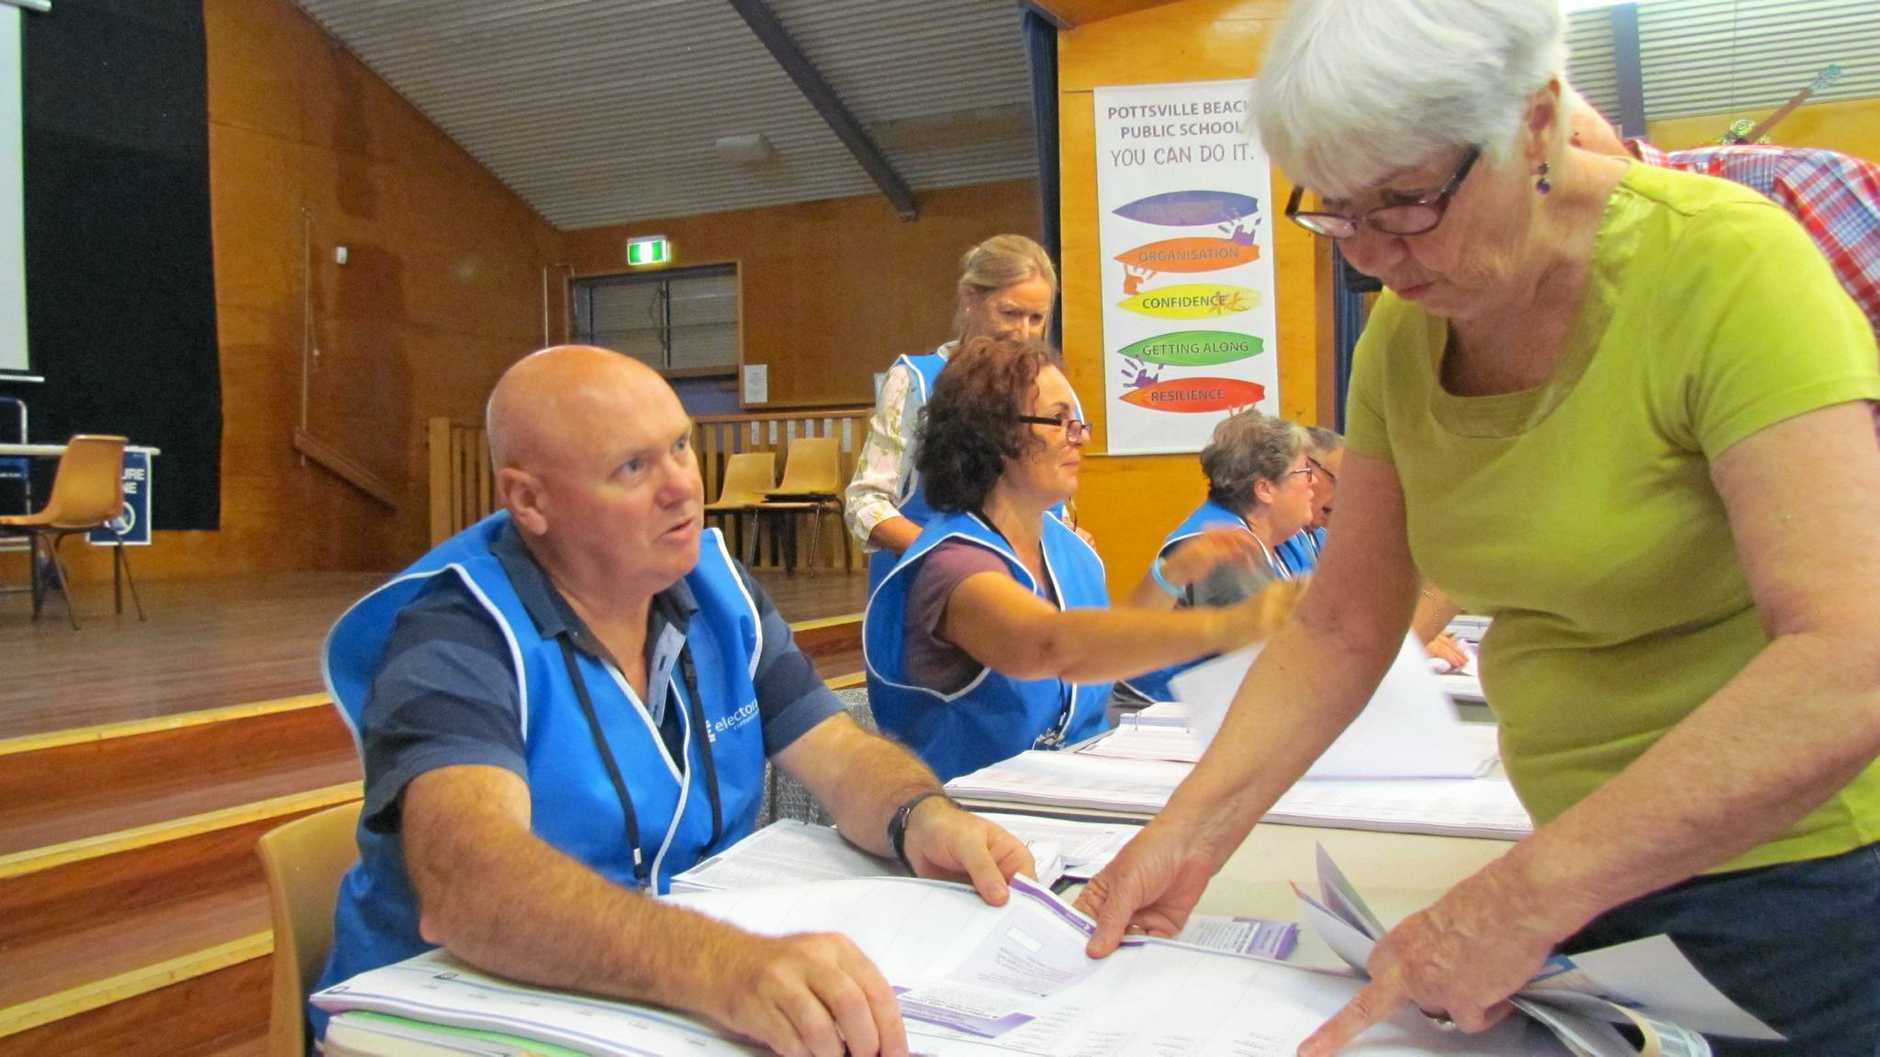 Pottsville resident Shirley FitzGerald gets her ballot paper from electoral commission worker Richard Johnston at the Pottsville Beach Public School booth